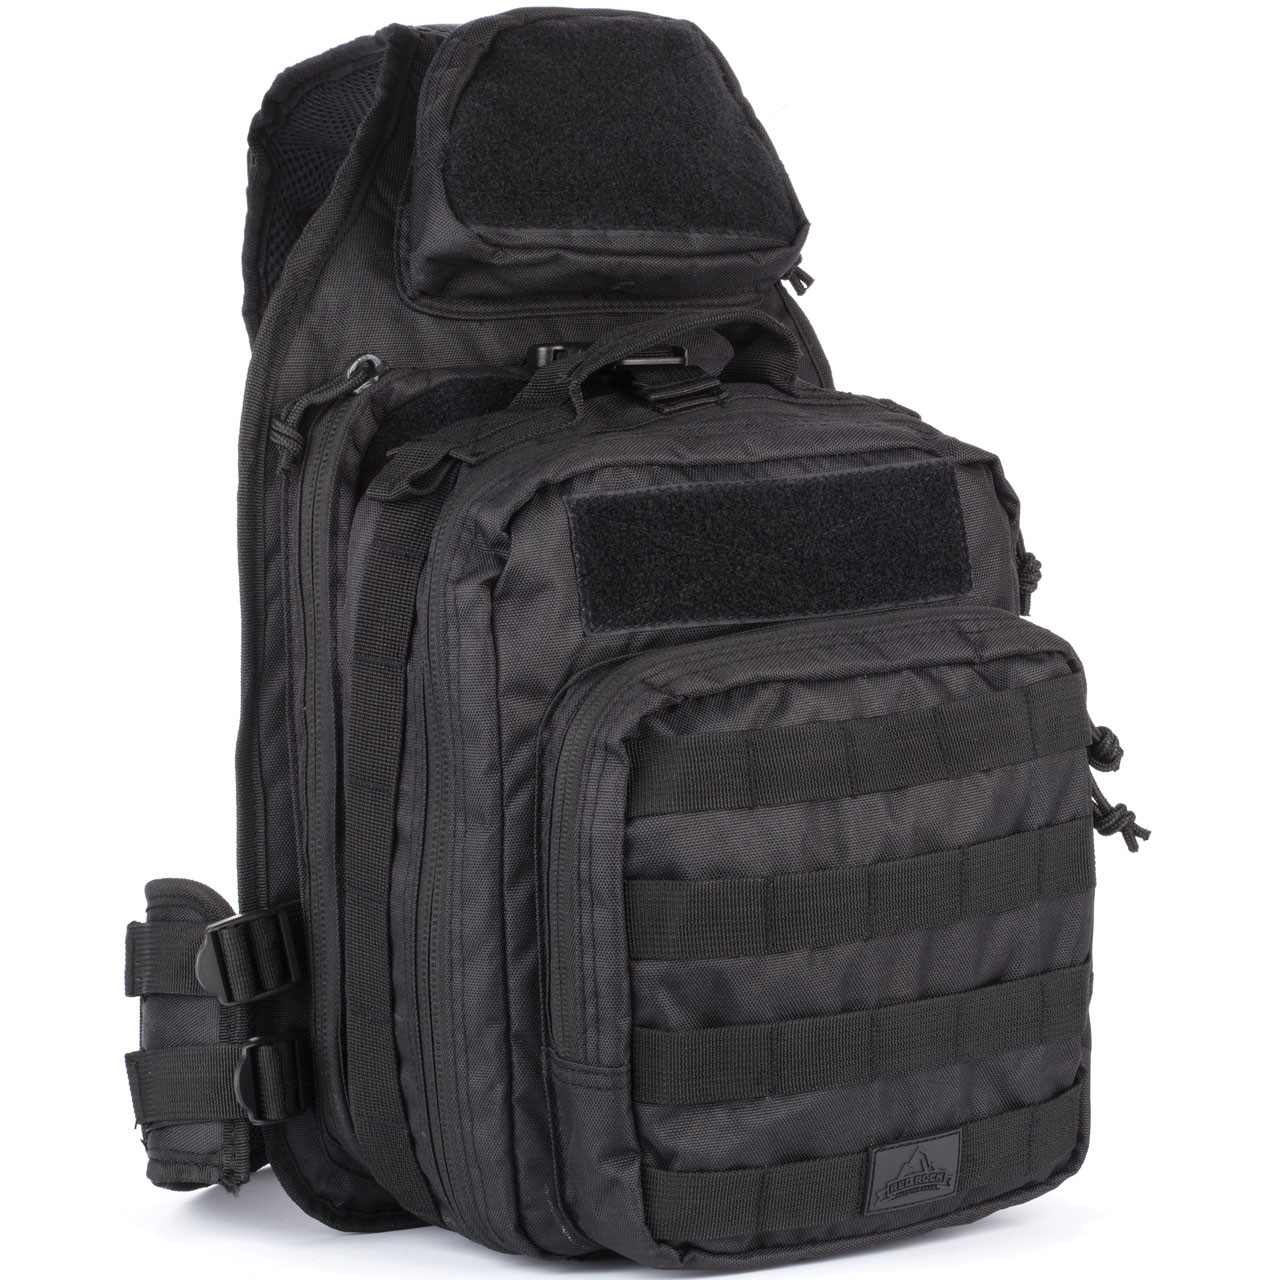 Recon Sling Pack Conceal Carry Red Rock Outdoor Gear